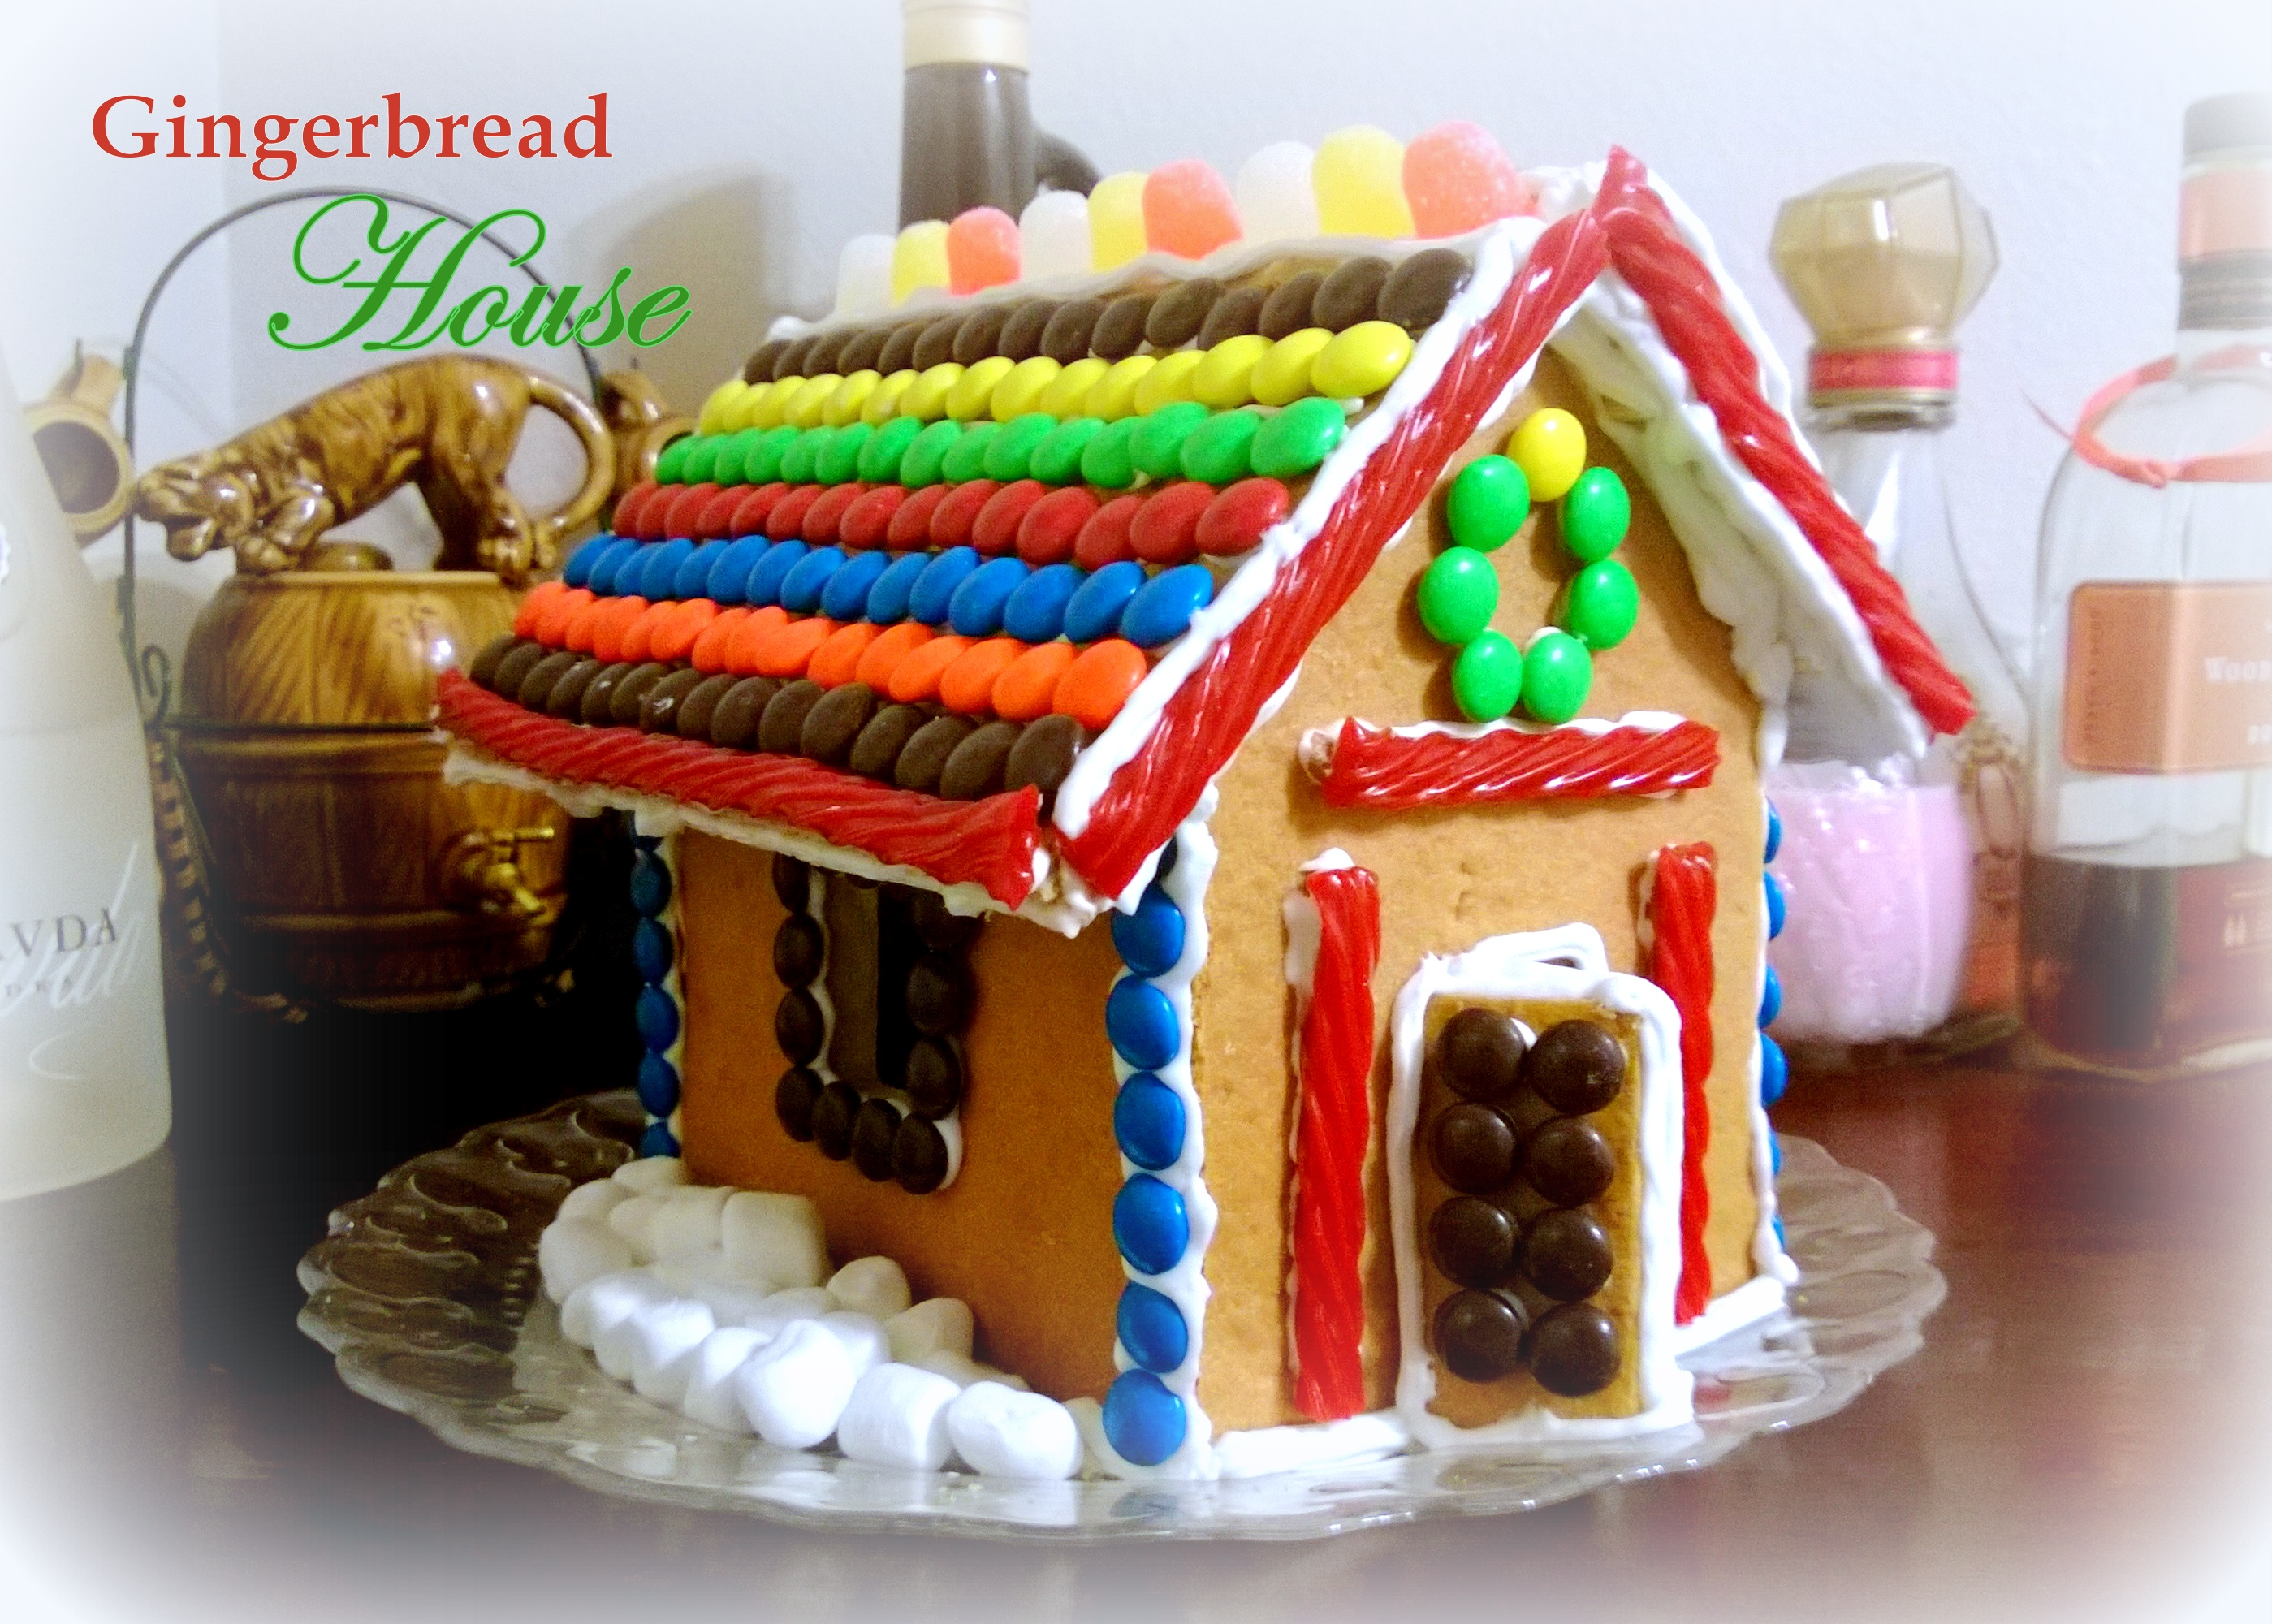 House Decorated Like Gingerbread House